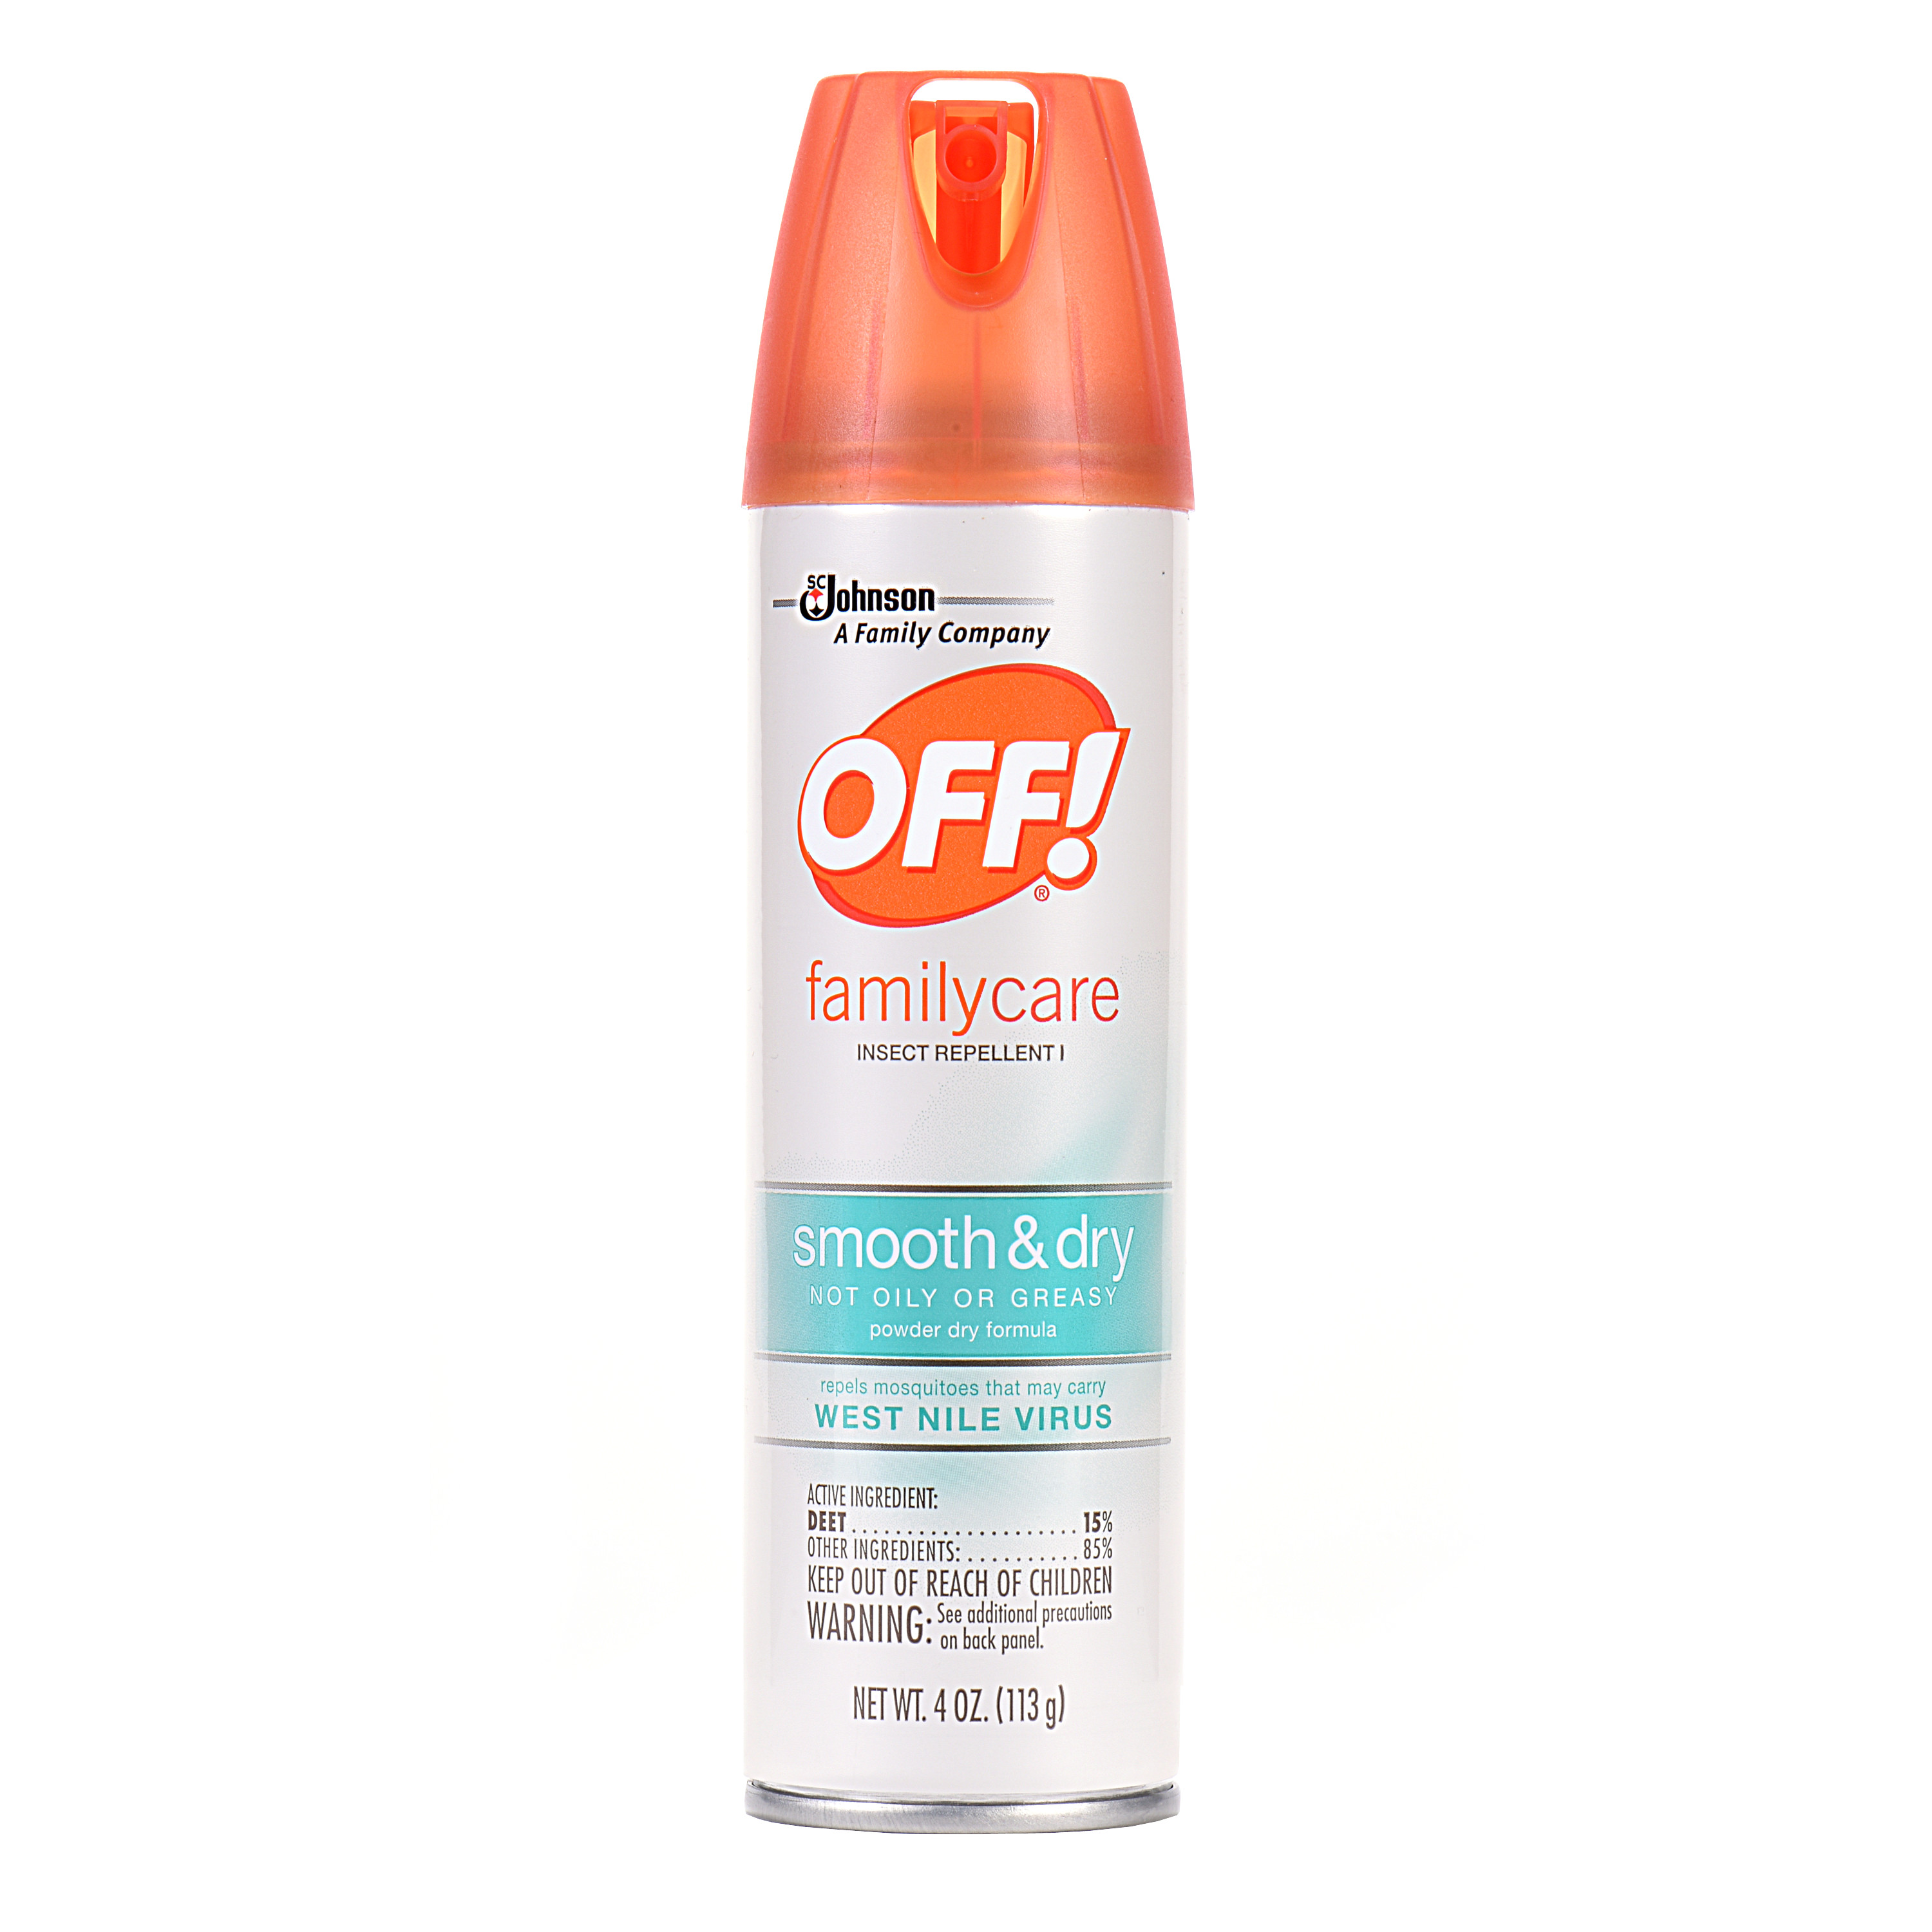 OFF! FamilyCare Insect Repellent I Smooth & Dry 4 Ounces